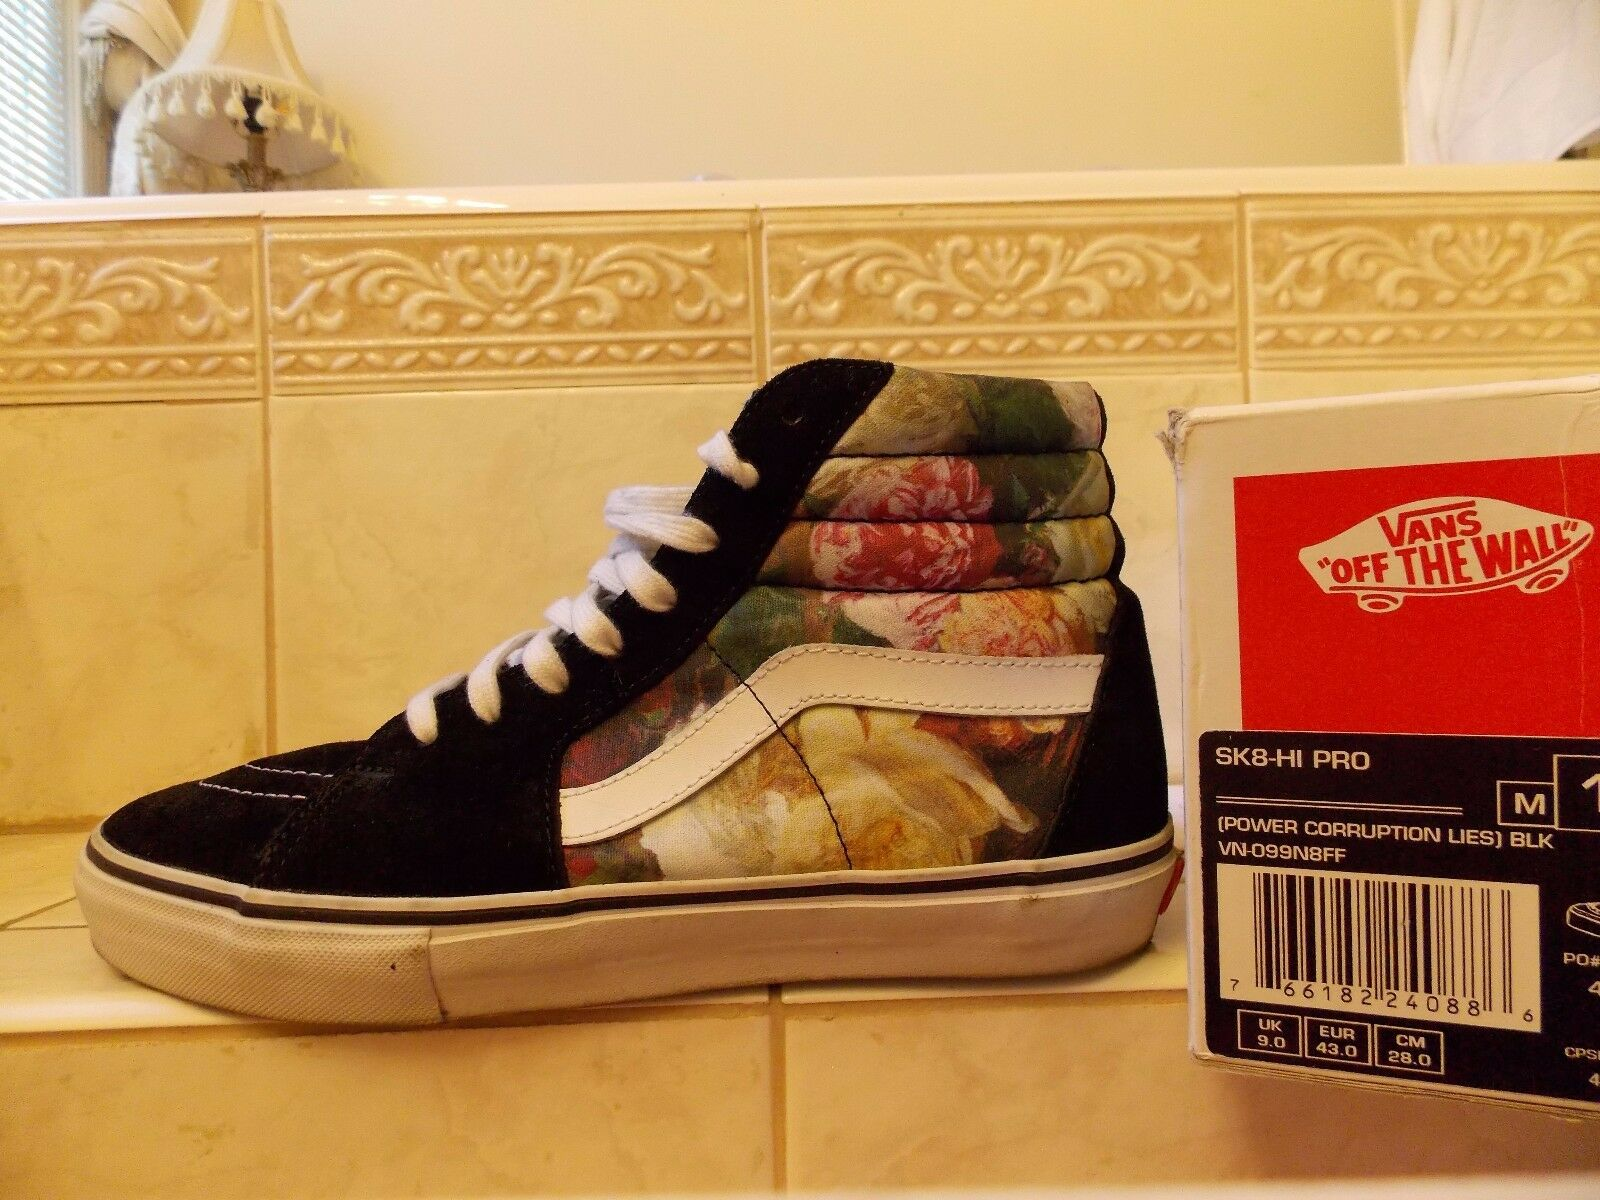 Supreme Vans PCL Power Corruption Lies SK8-Hi Size size 10